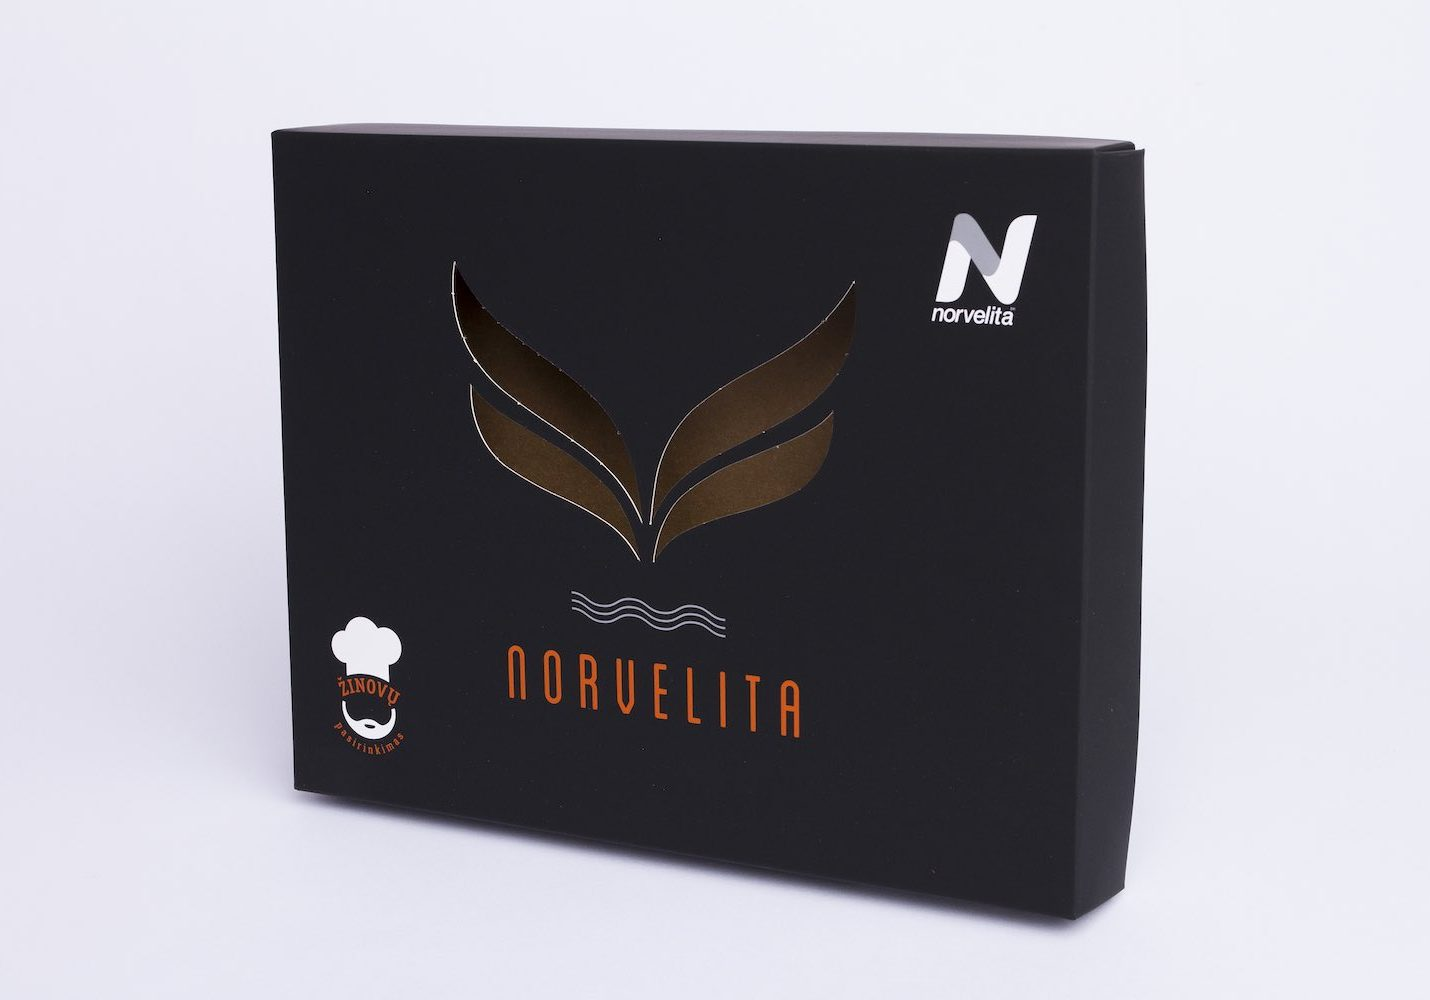 Norvelita packaging by Vilpak